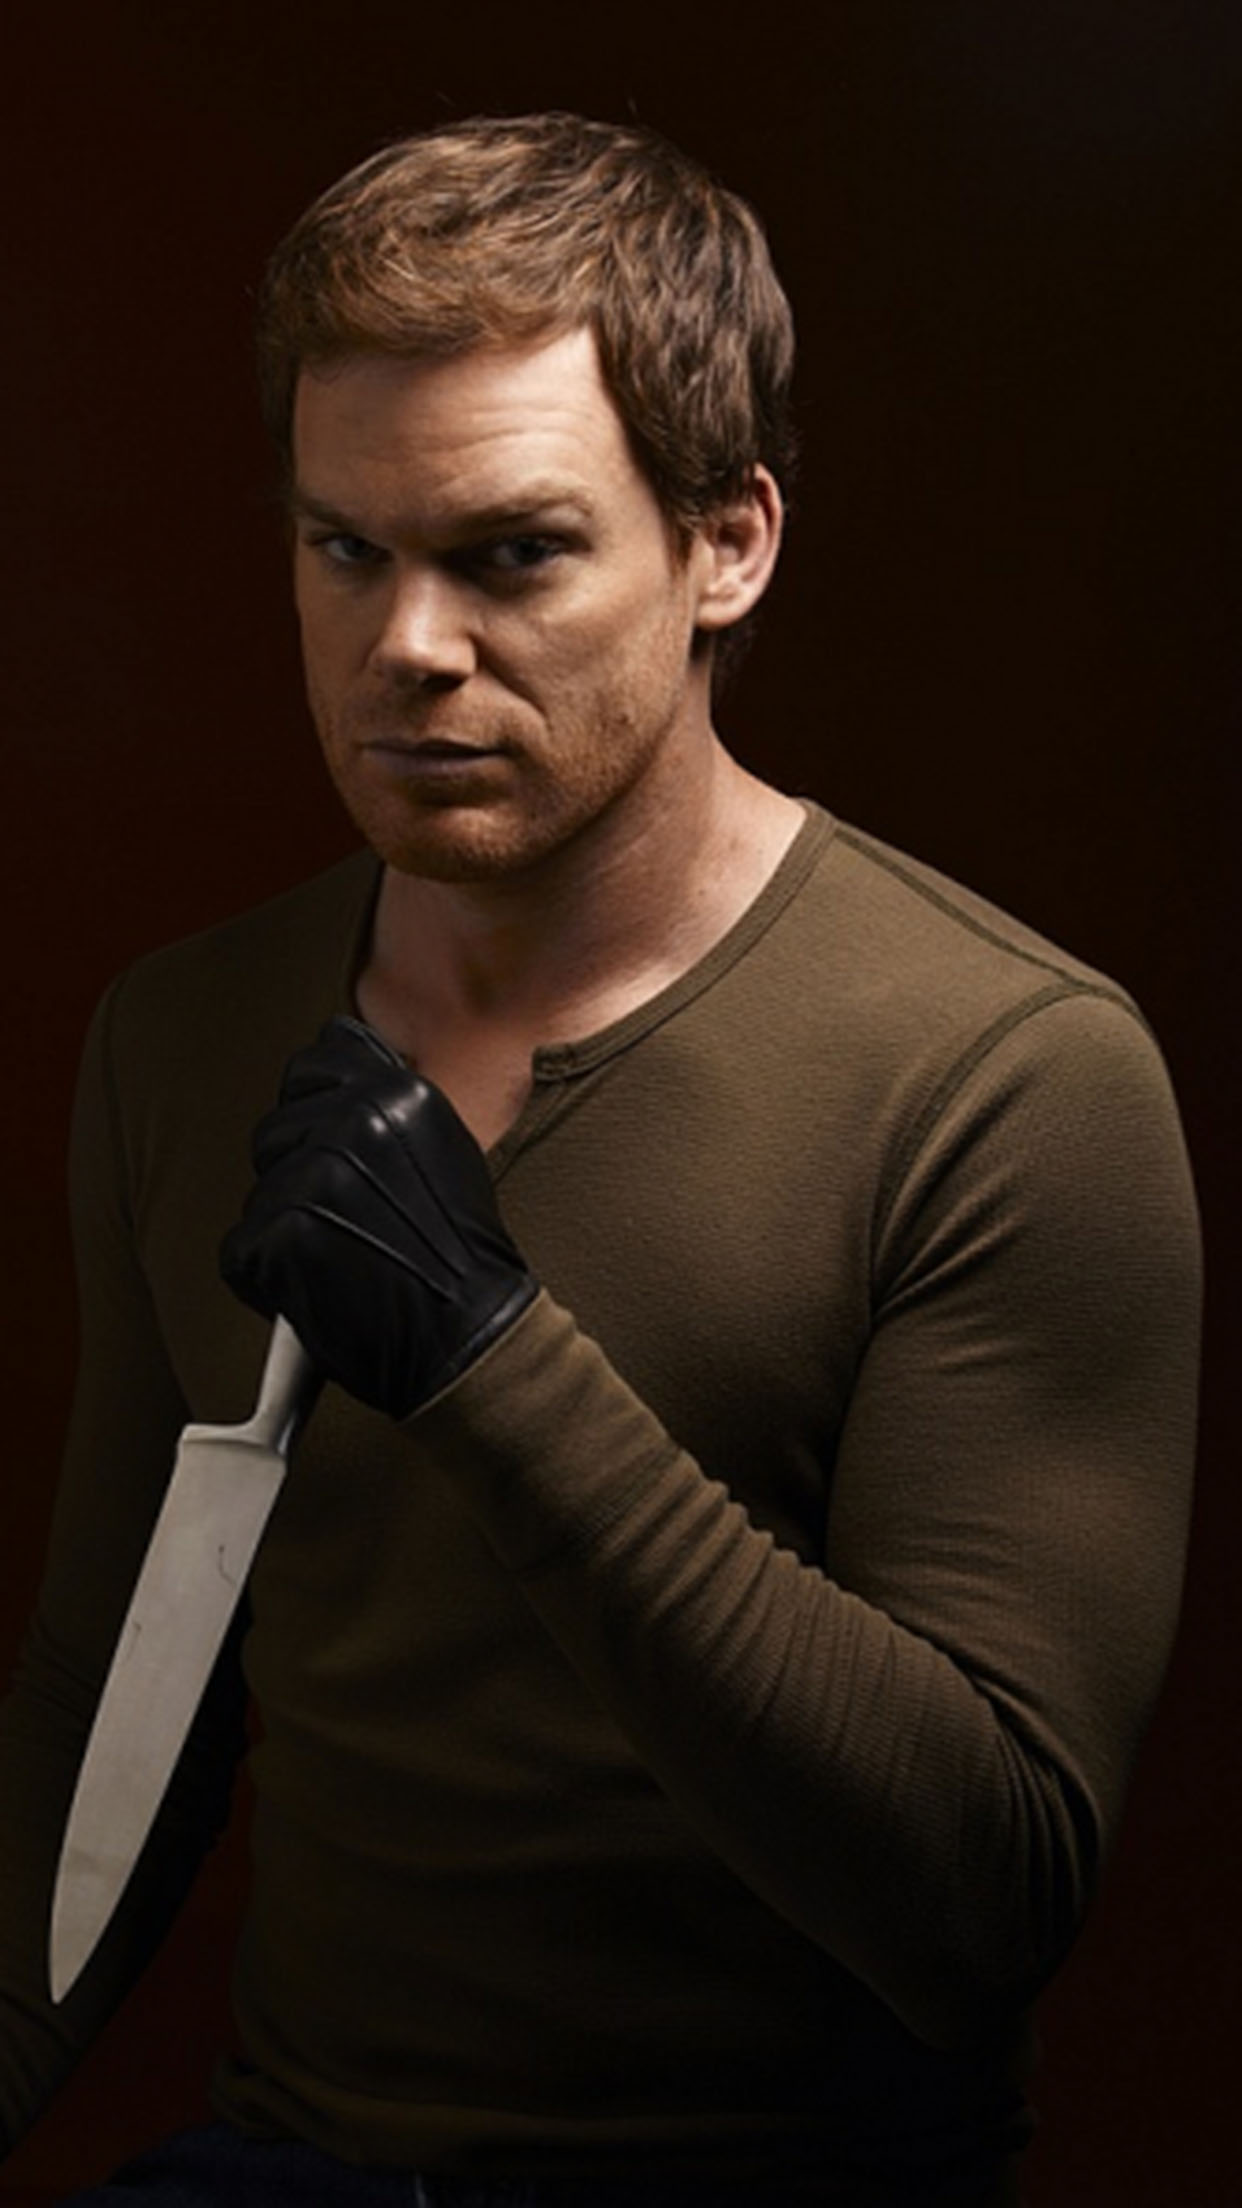 All White Iphone Wallpaper Dexter Michael C Hall Wallpaper For Iphone X 8 7 6